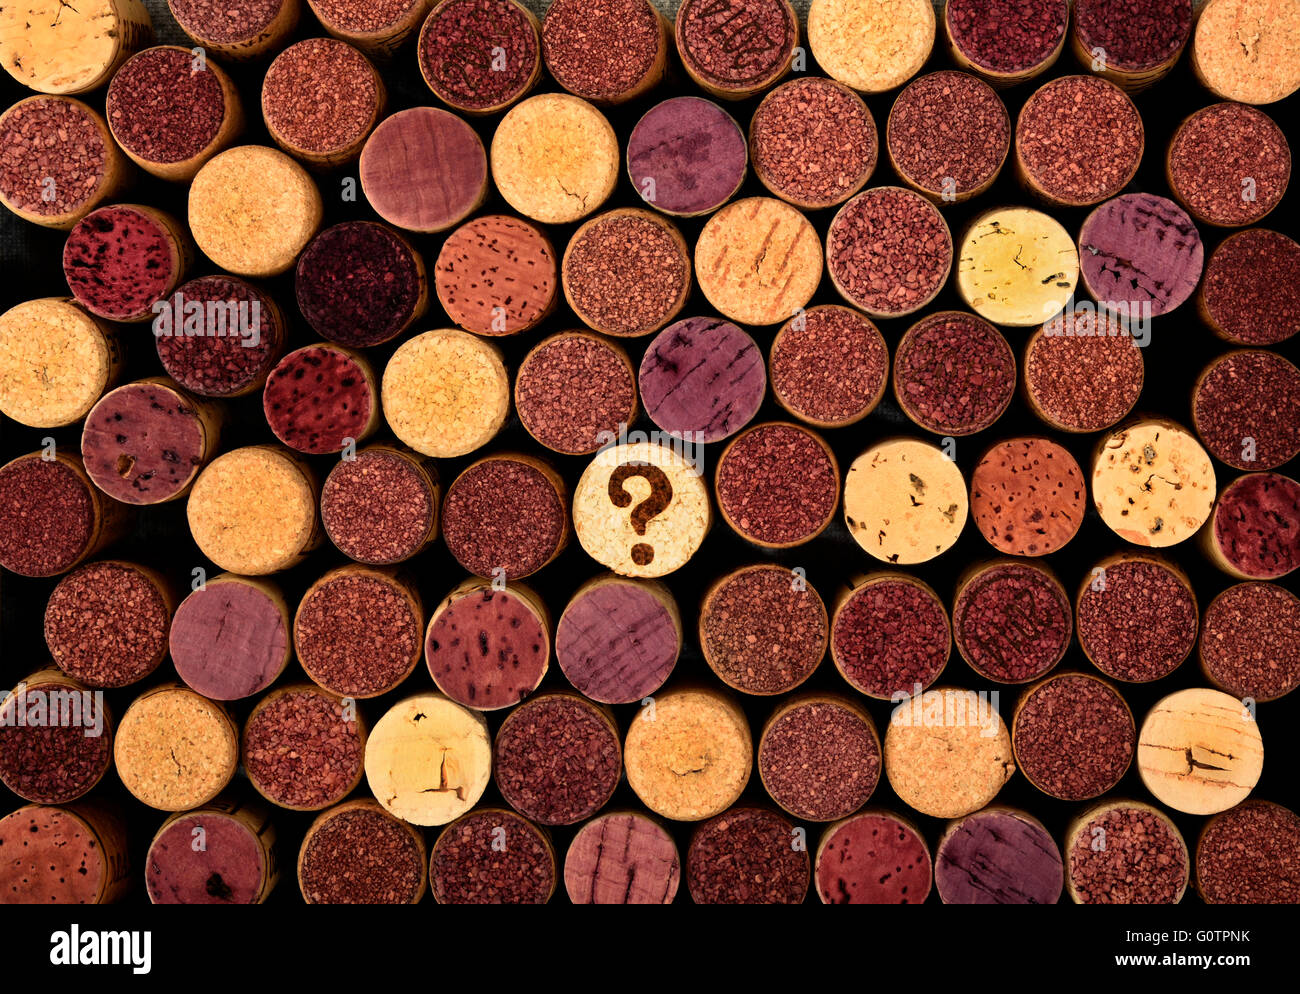 collection of wine corks with a question mark on one of them - Stock Image